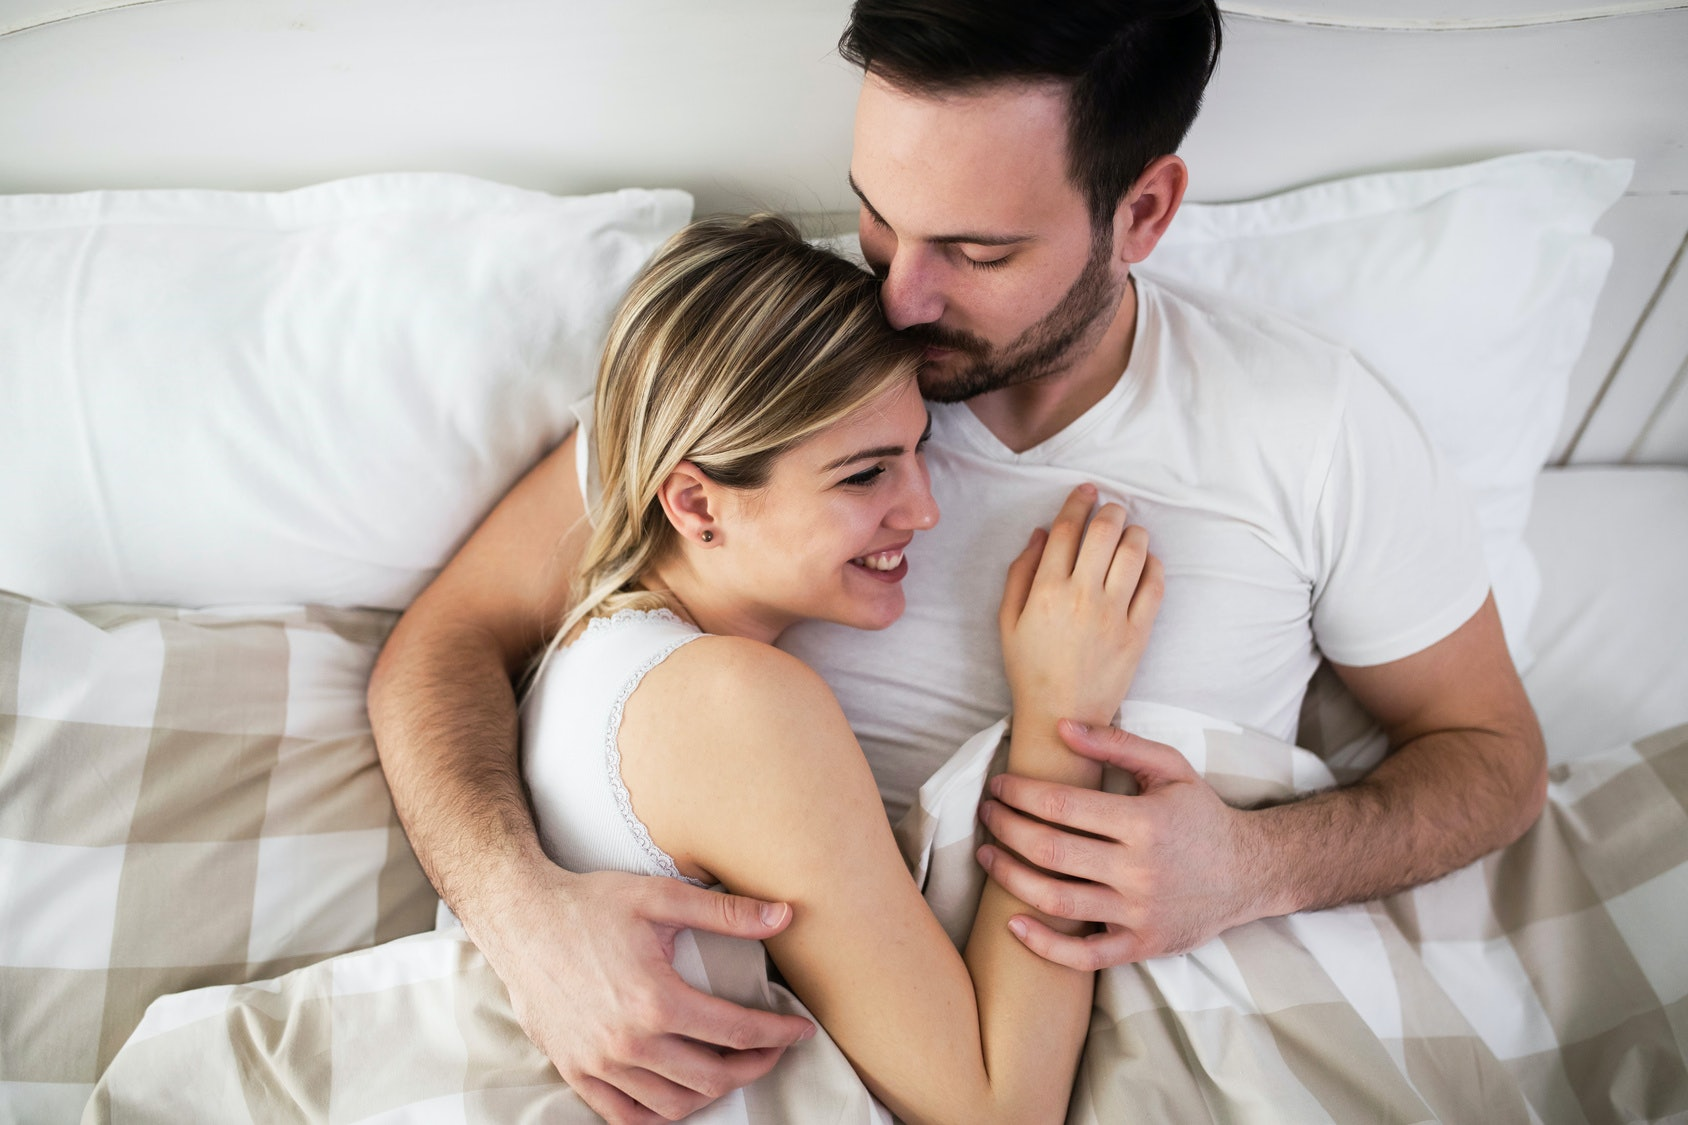 I want to get pregnant dating site